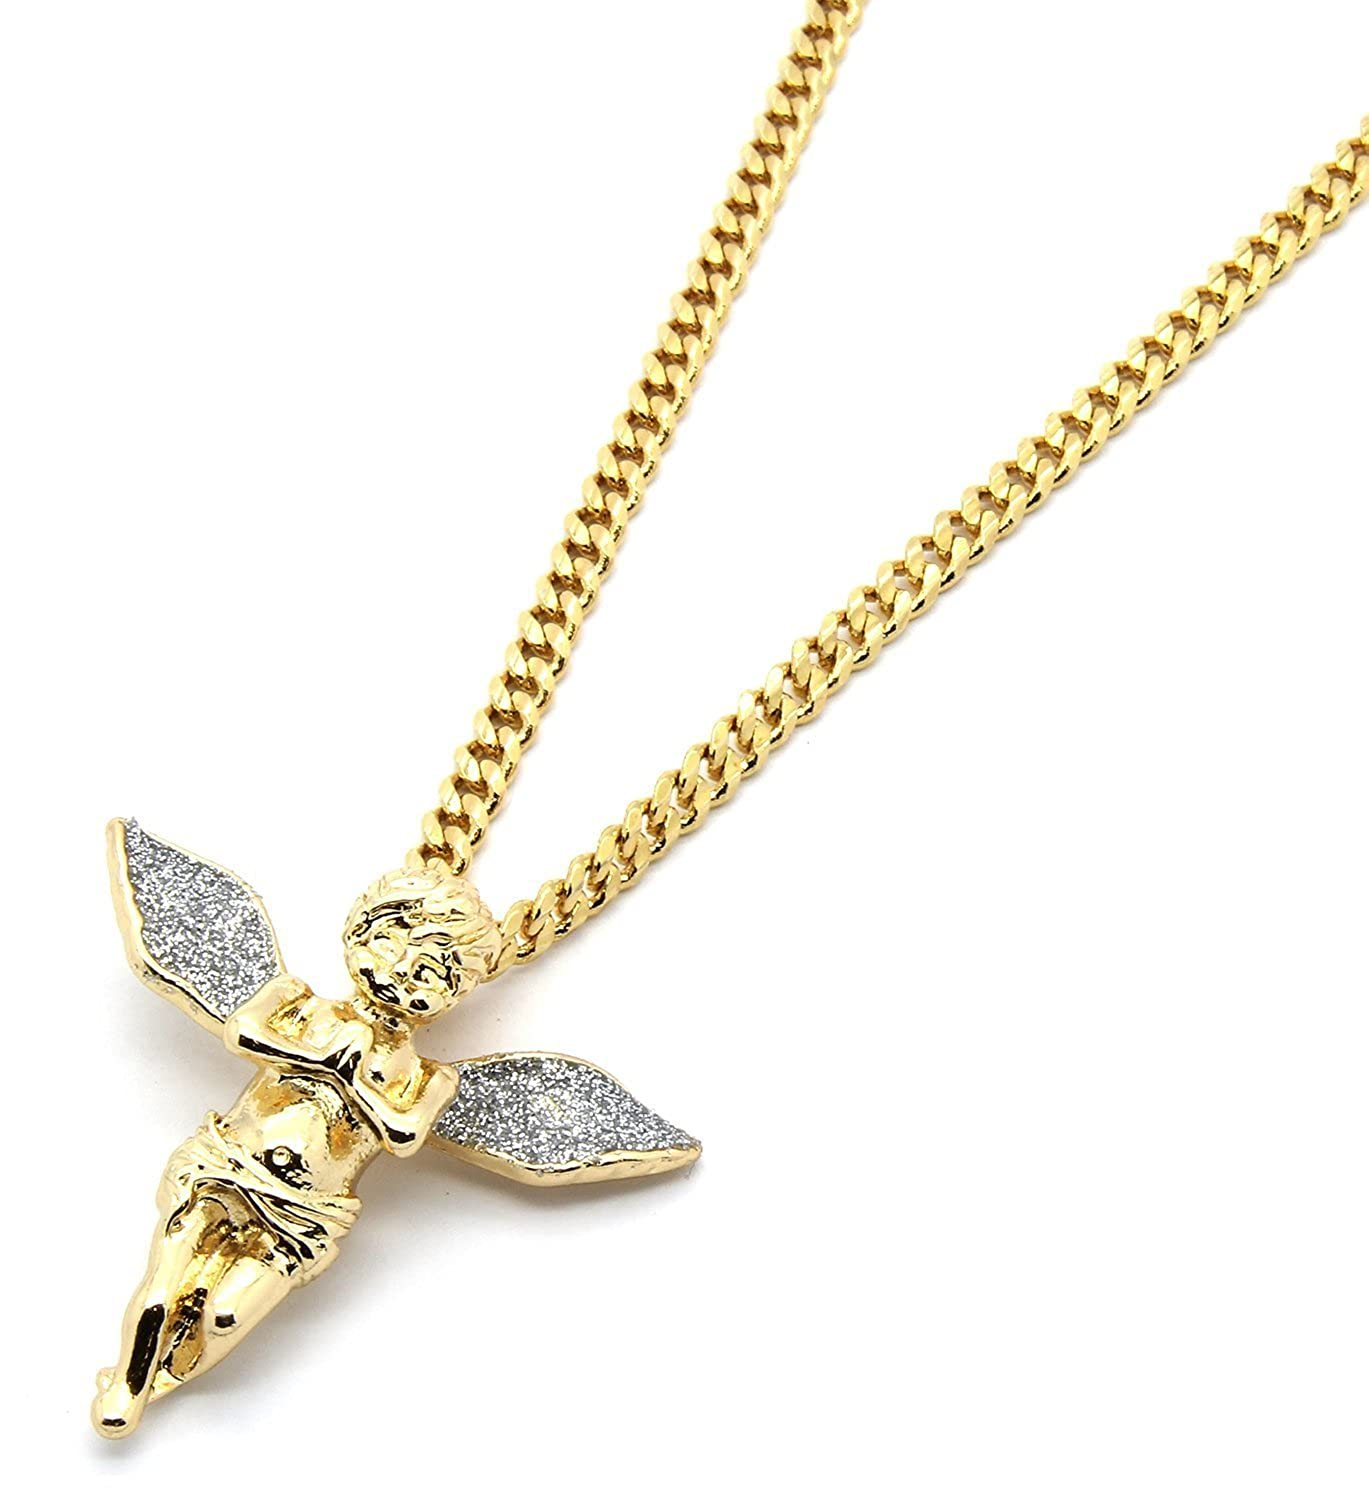 or necklace gold close the chain ezzykaia pendant product in up sprinkle showing yellow a adorned with